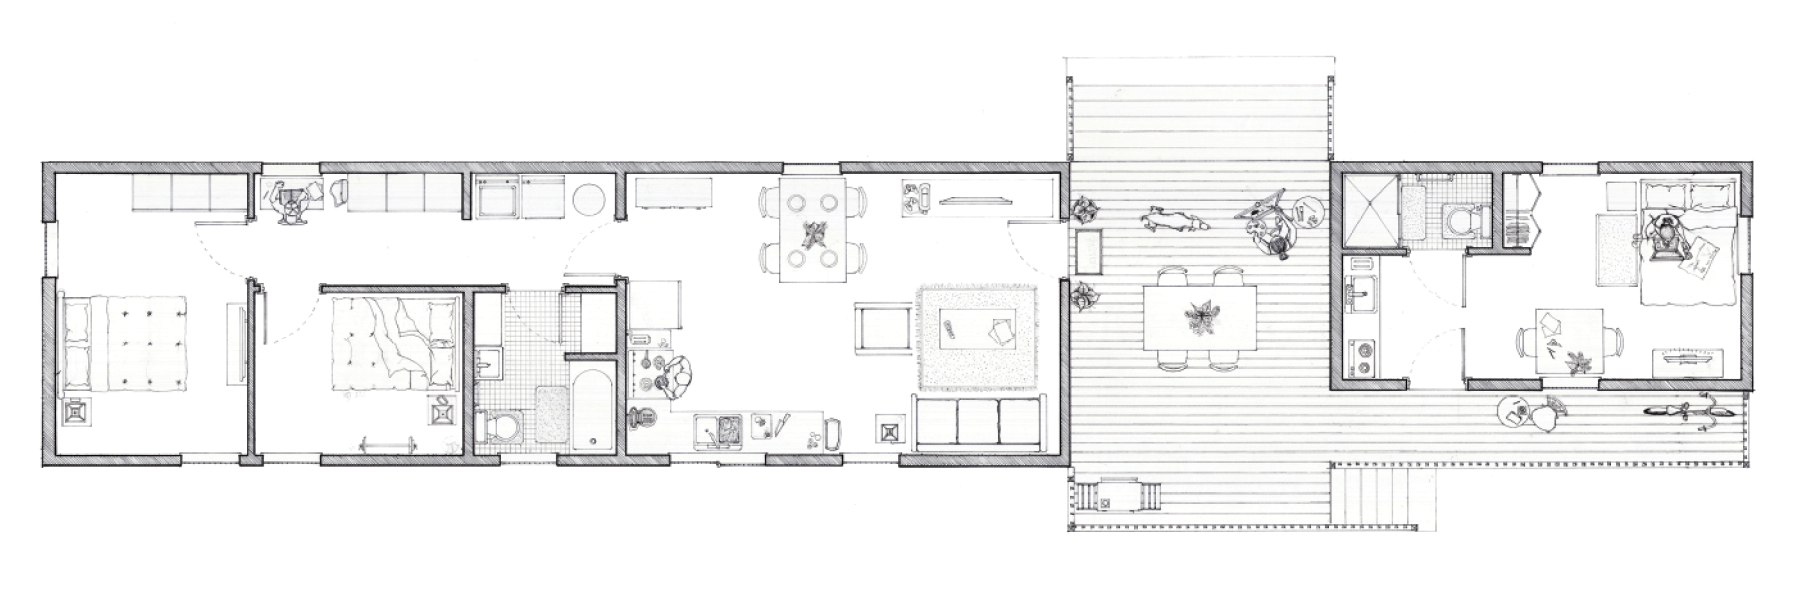 Floorplan of Income Home